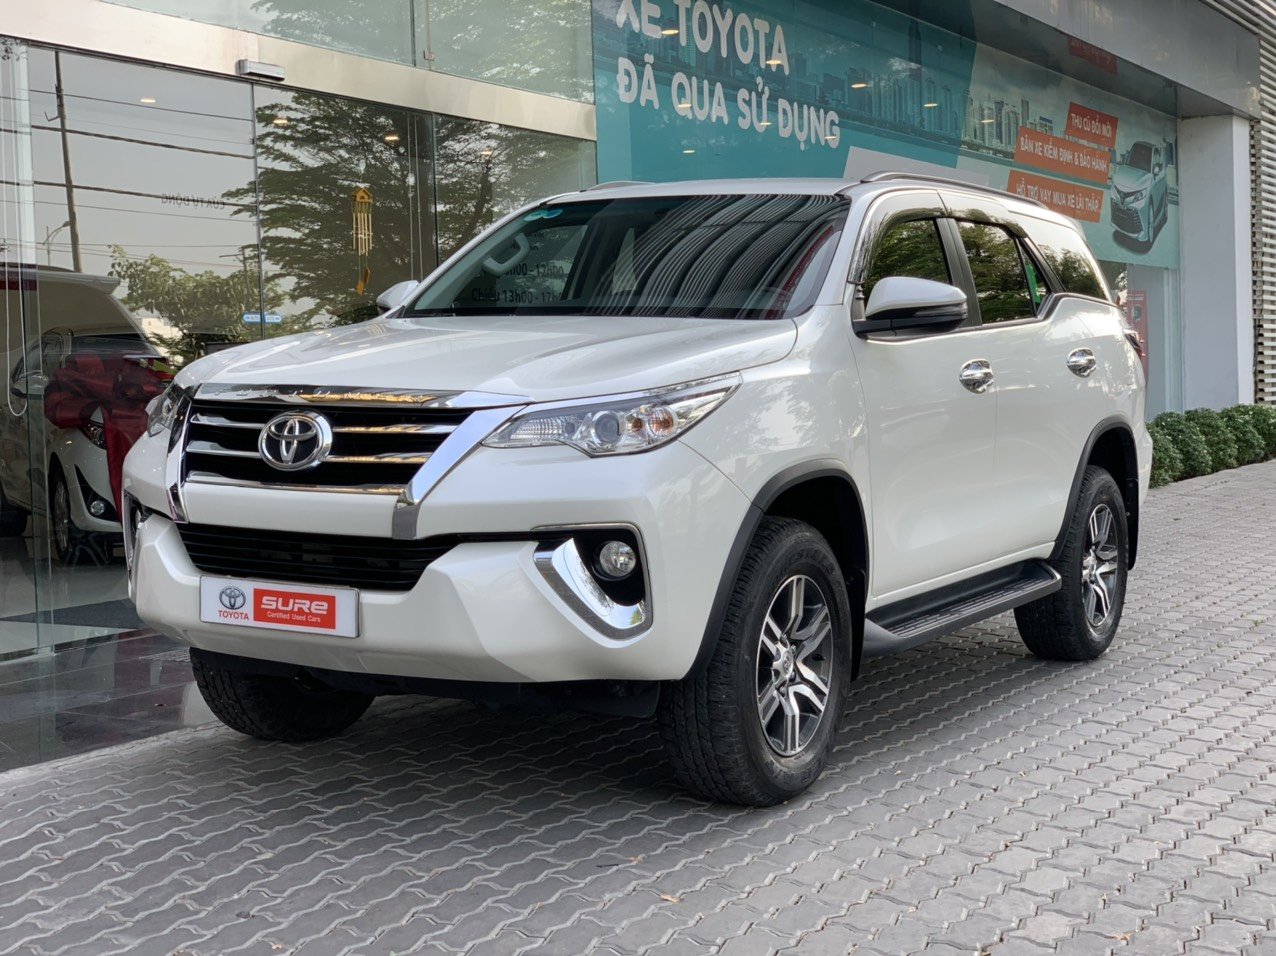 TOYOTA FORTUNER G AT 2019 Nhập Khẩu INDONESIA